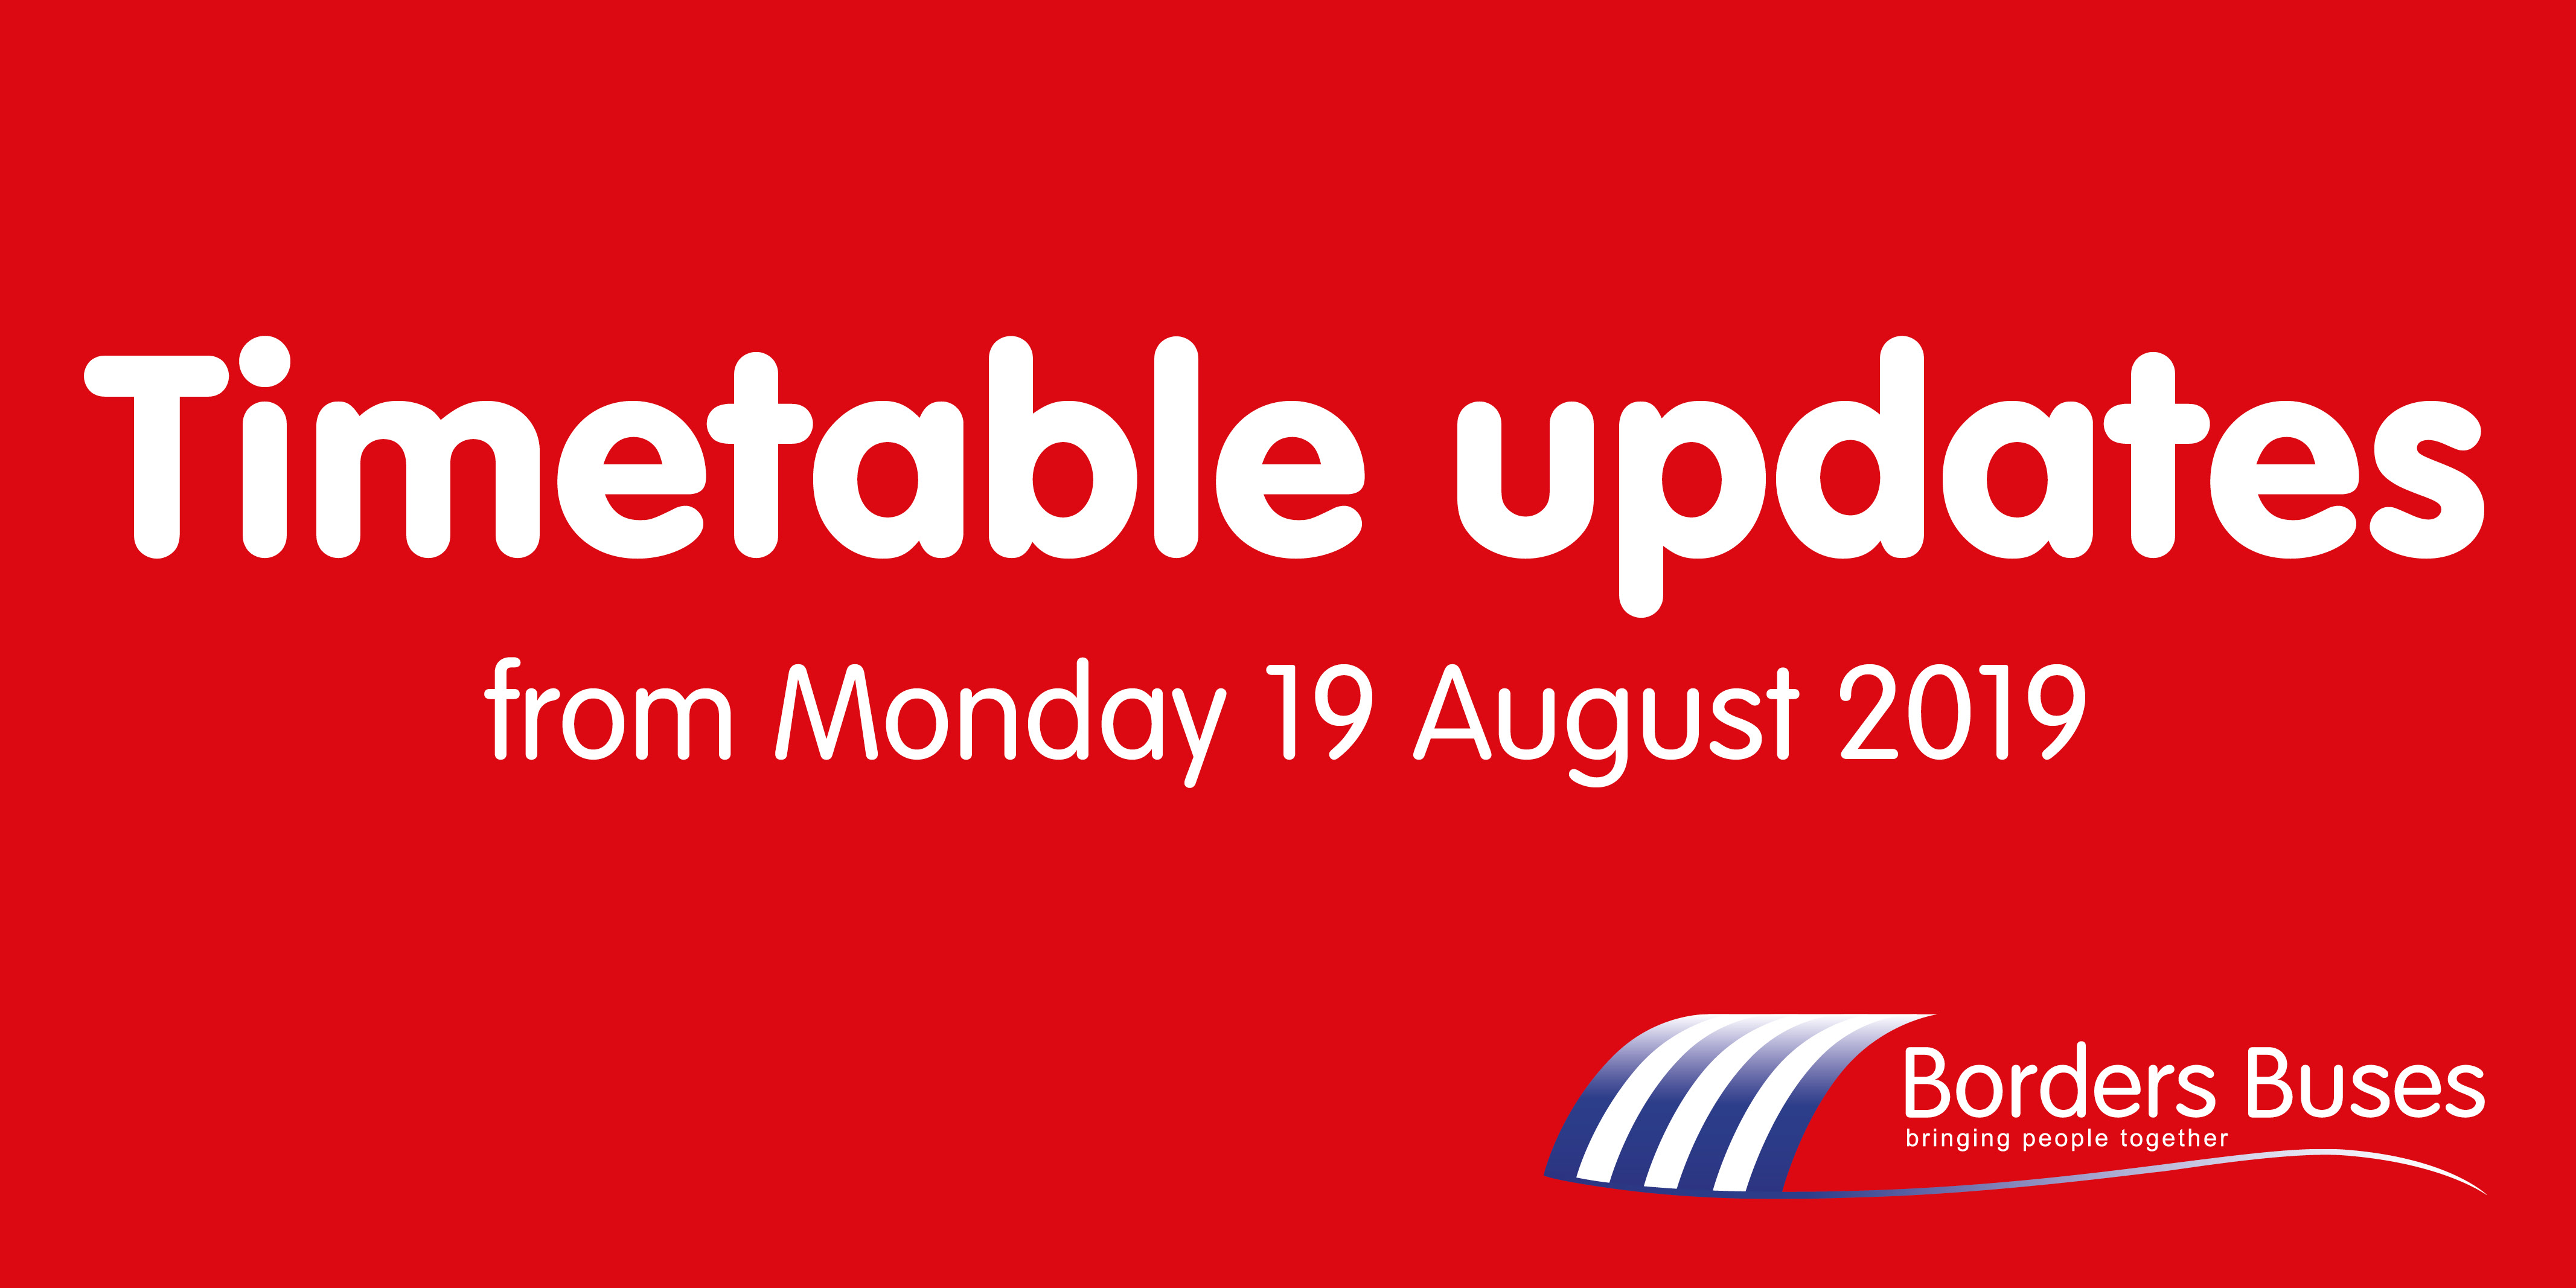 Red graphic with borders buses logo reading 'timetable updates'